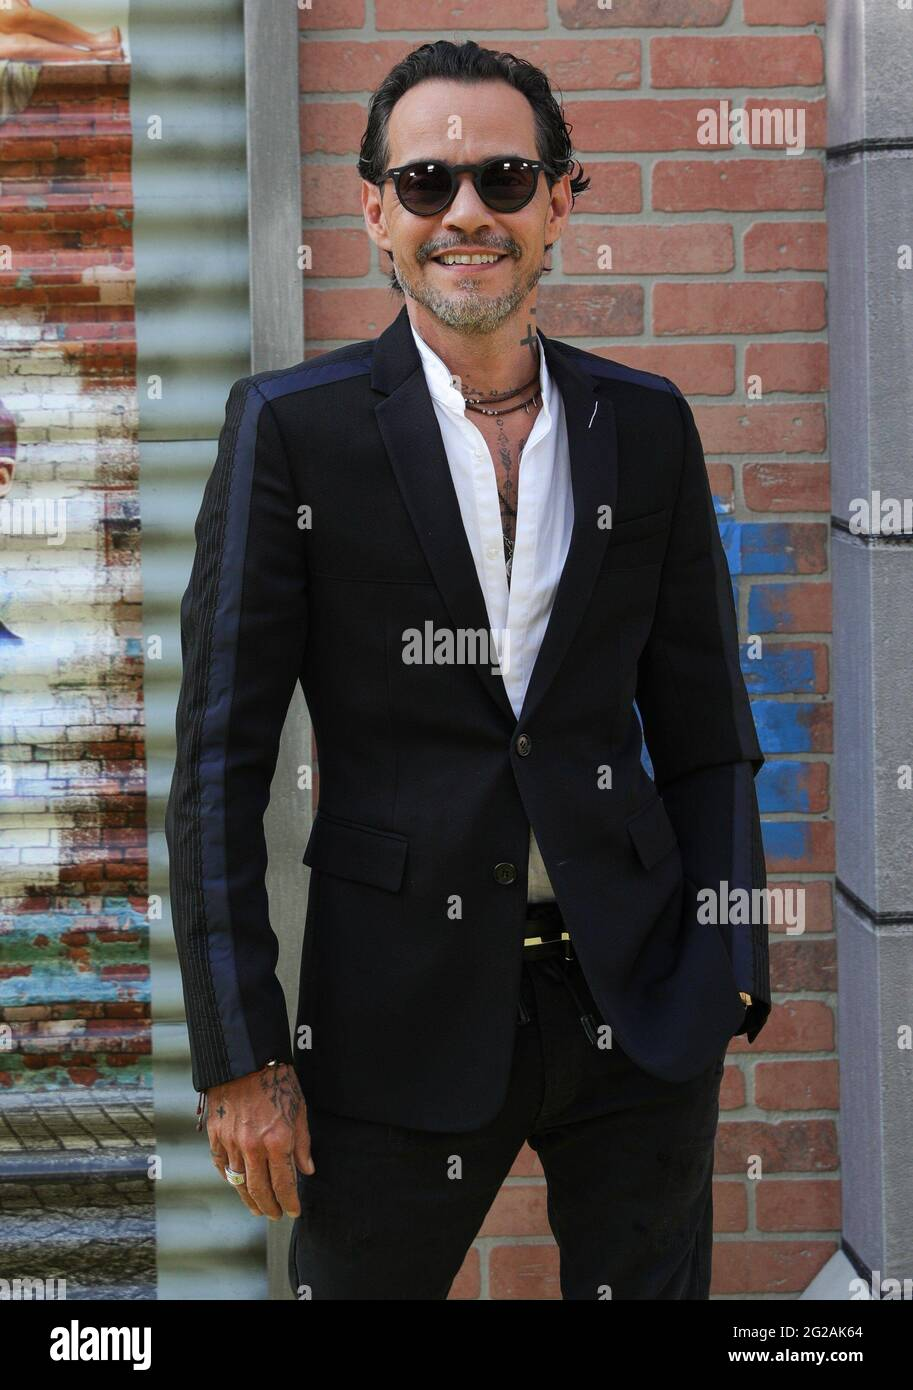 New York, NY, USA. 9th June, 2021. Marc Anthony at arrivals for IN THE HEIGHTS Premiere at 2021 Tribeca Festival Opening Night, United Palace Theatre in Washington Heights, New York, NY June 9, 2021. Credit: CJ Rivera/Everett Collection/Alamy Live News Stock Photo